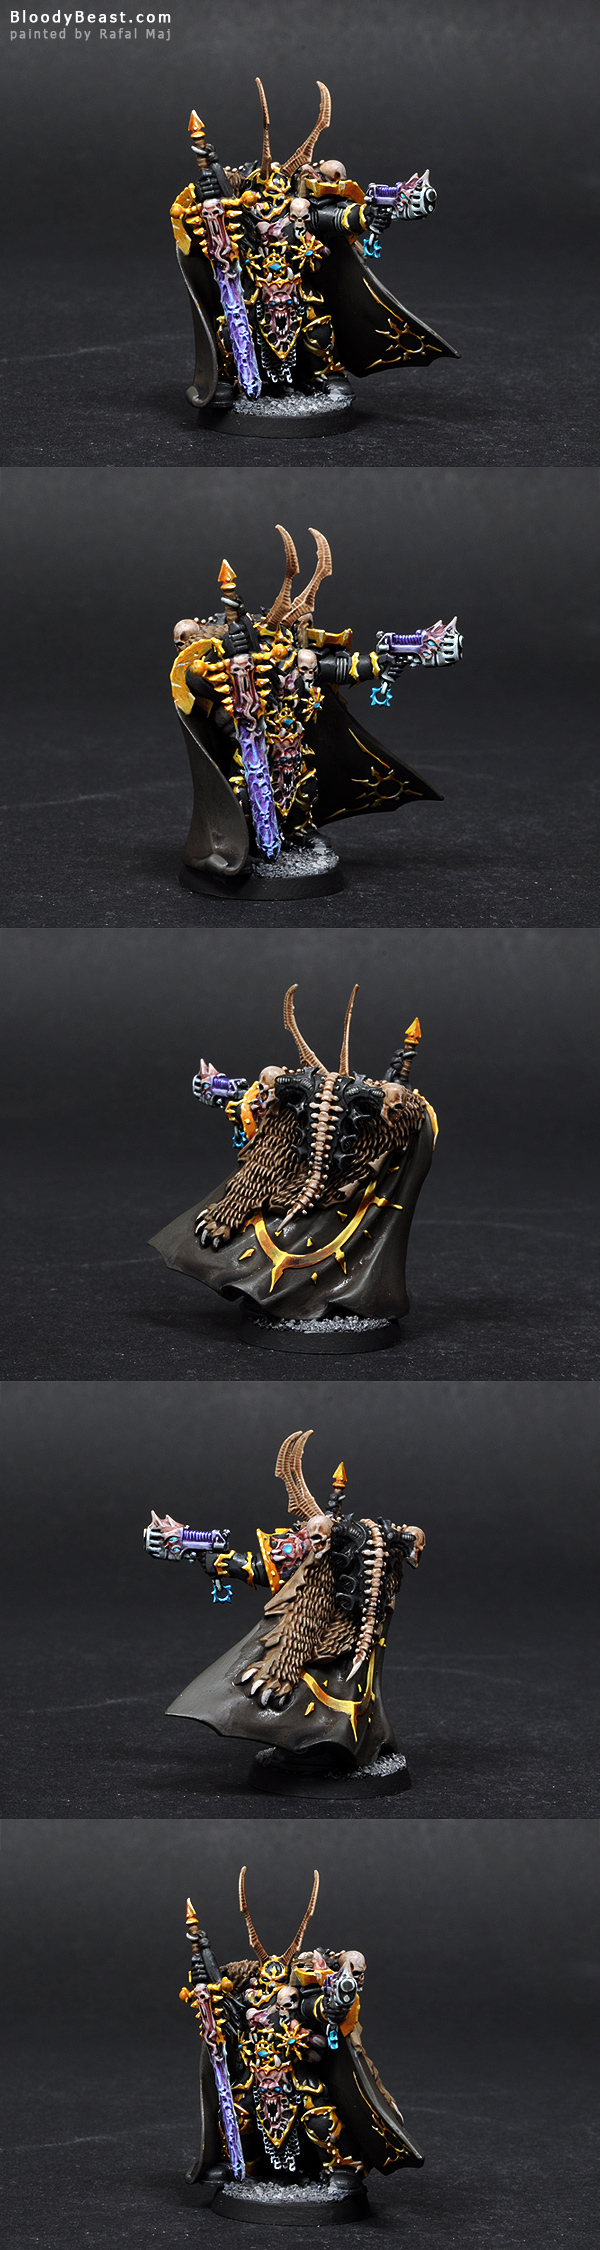 Chaos Space Marines Lord painted by Rafal Maj (BloodyBeast.com)